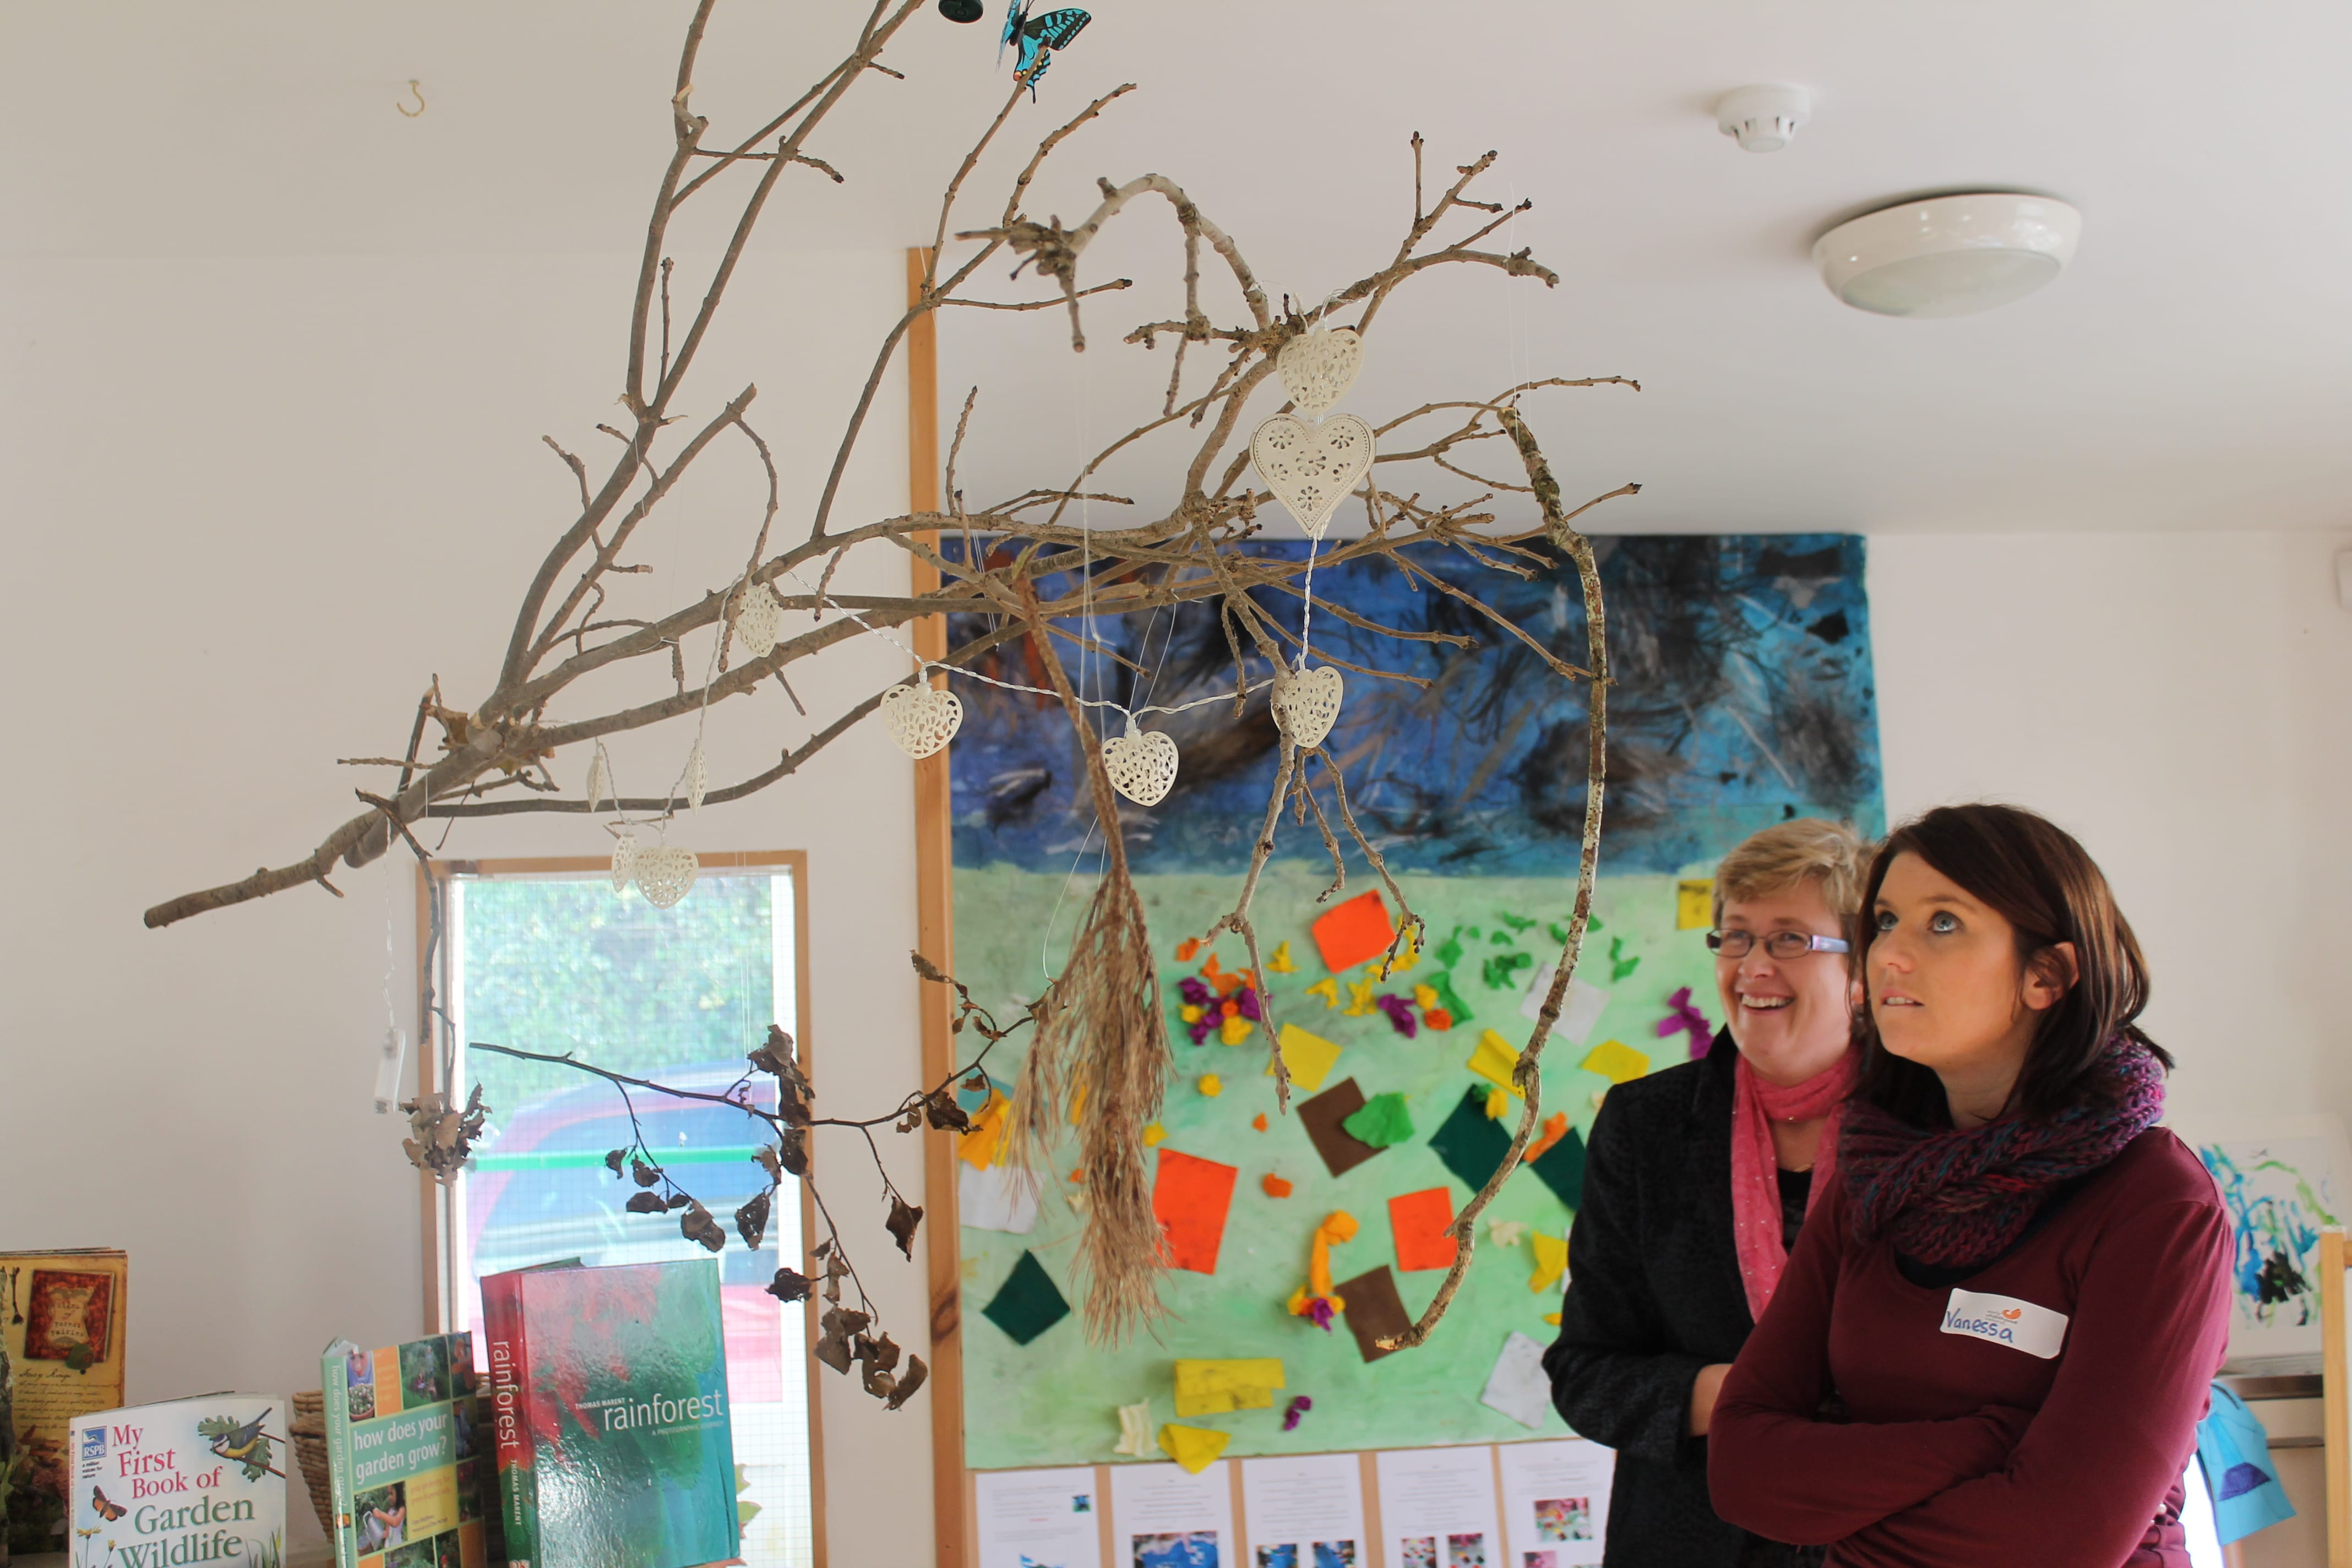 reggio emilia The innovative teacher project provides professional development opportunities for educators, administrators and parents interested in the study of the reggio emilia approach to early childhood education.